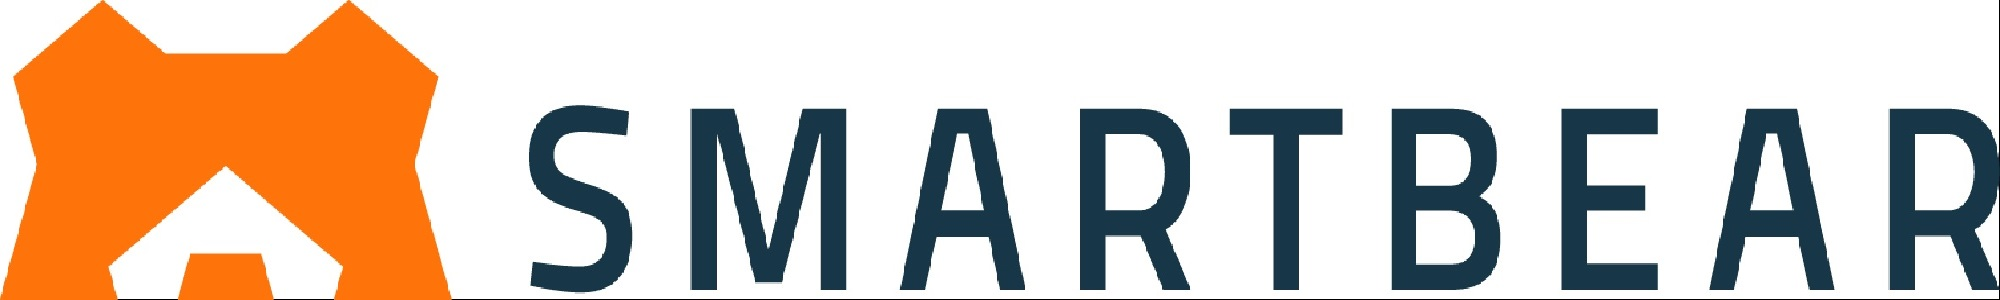 SmartBear Announces All-Virtual User Conference for 2020